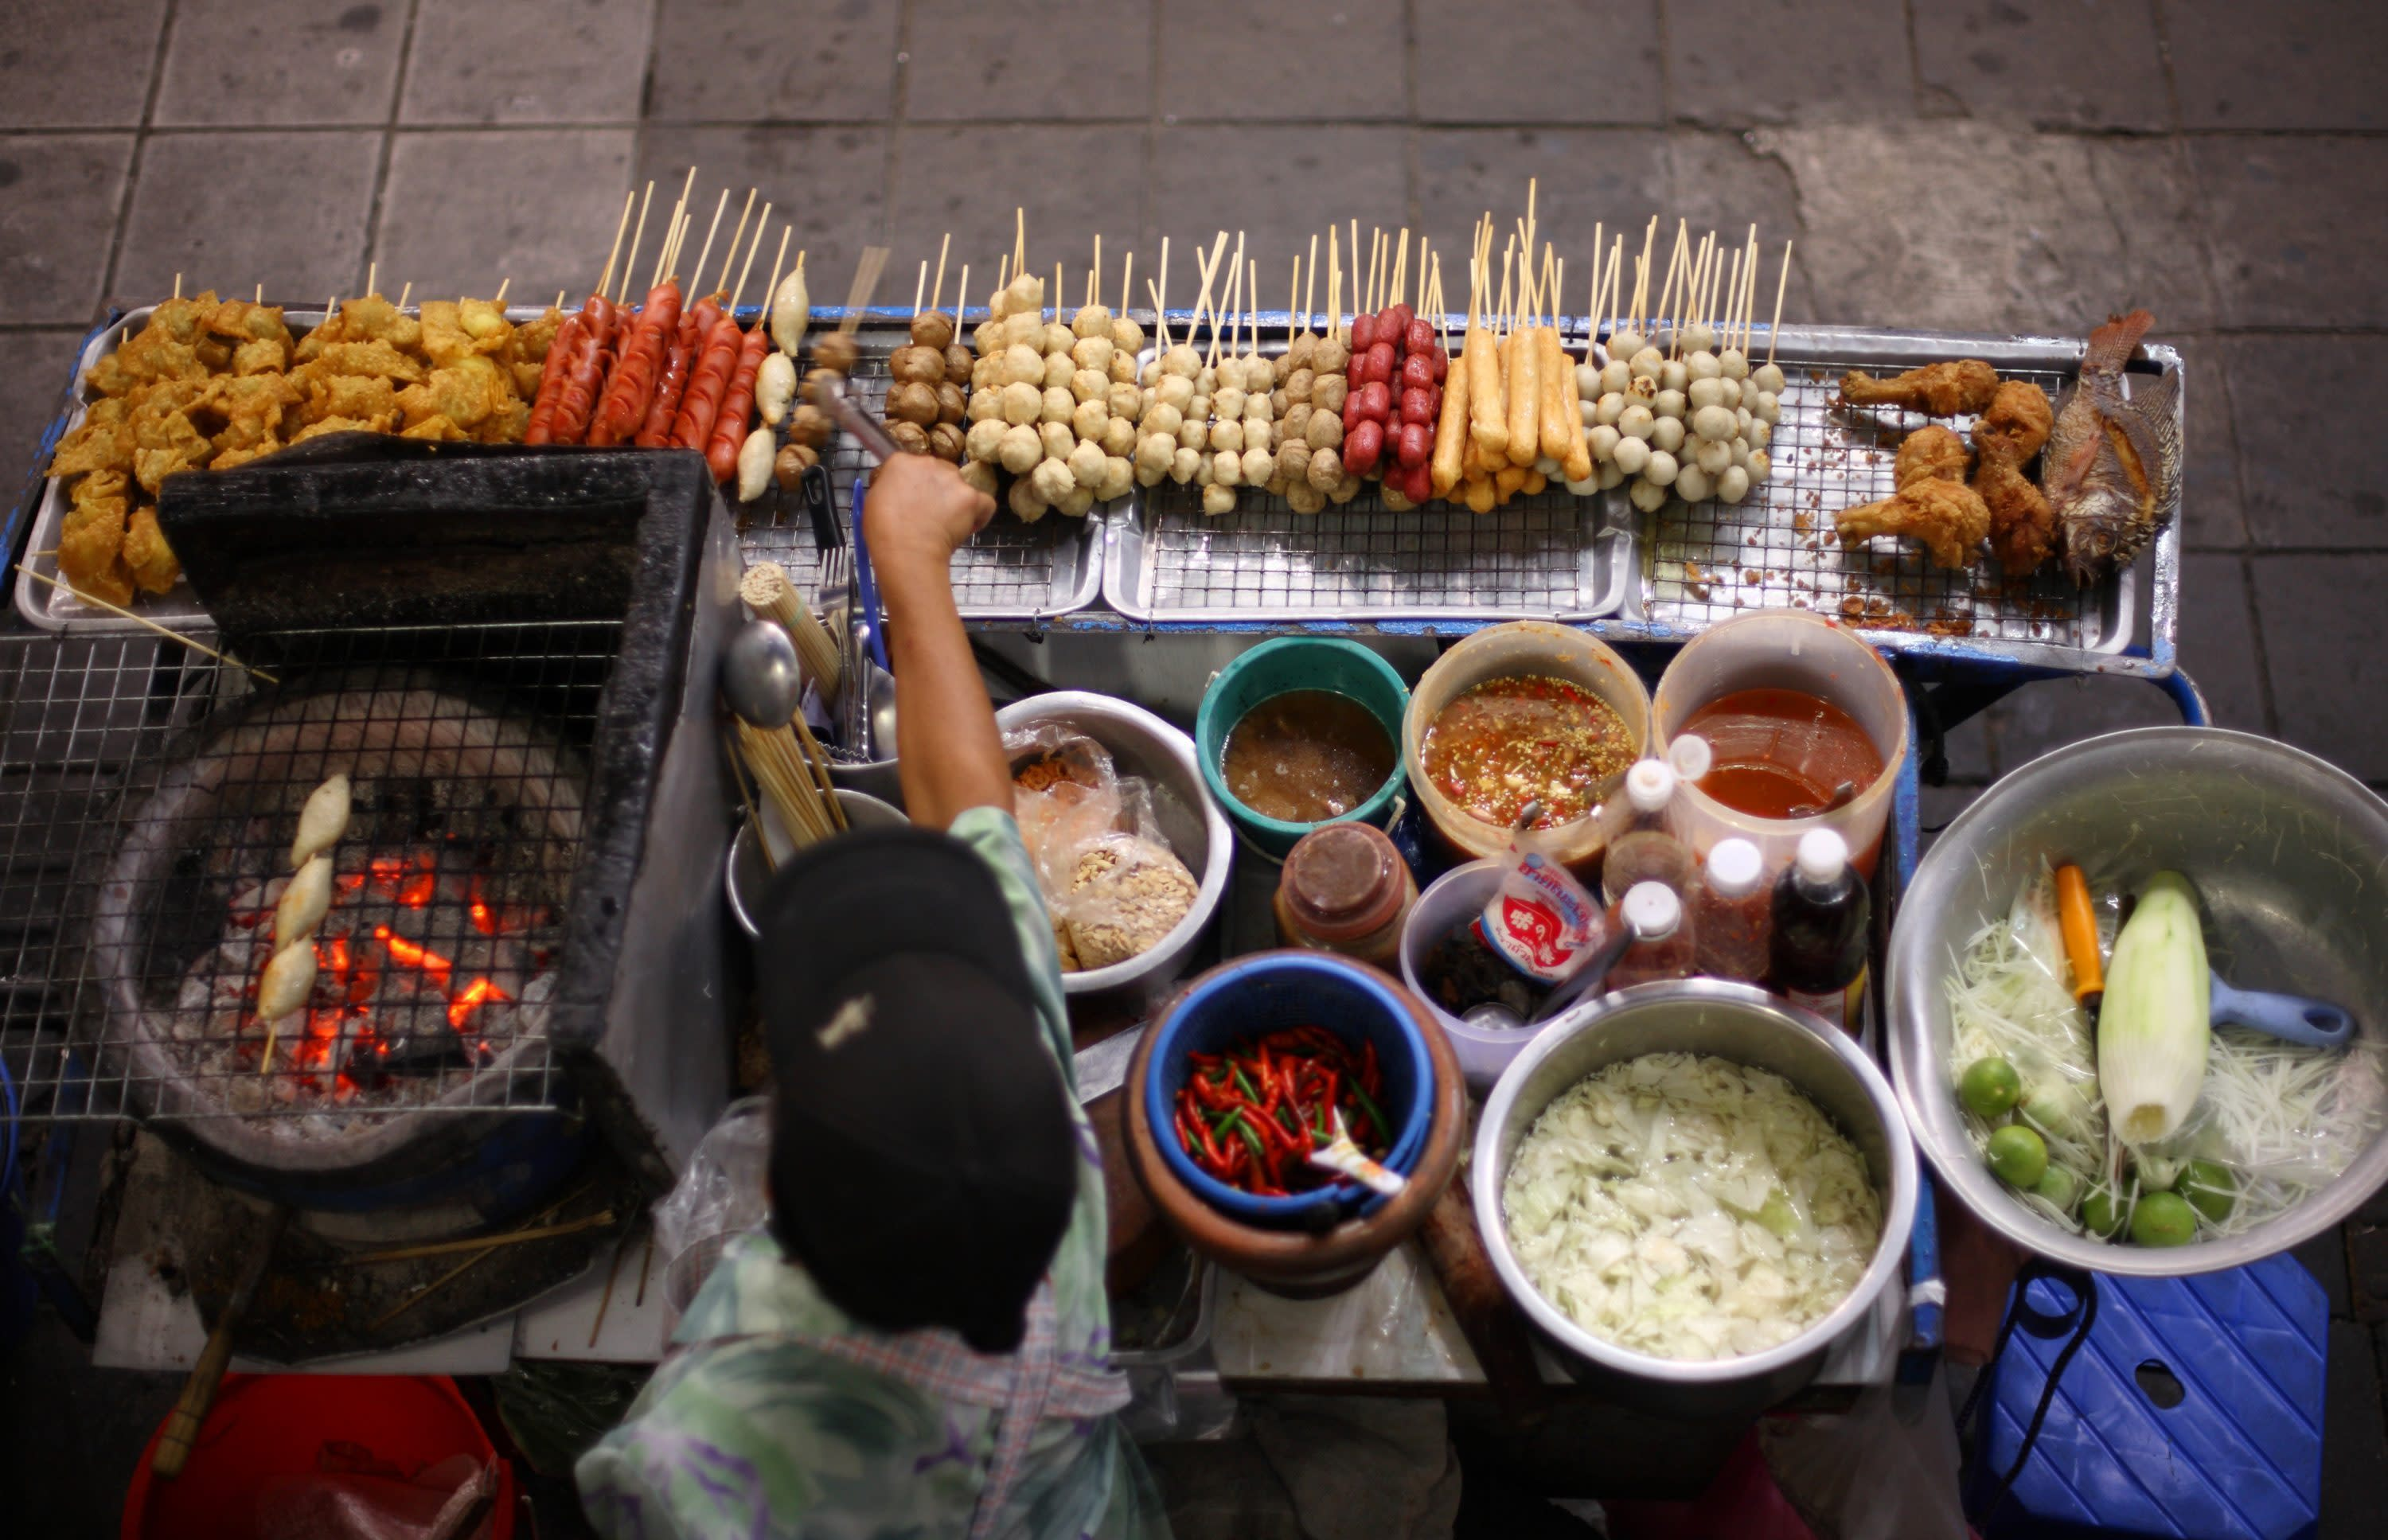 Thai Street Food culture makes it to our Top 10 food destinations